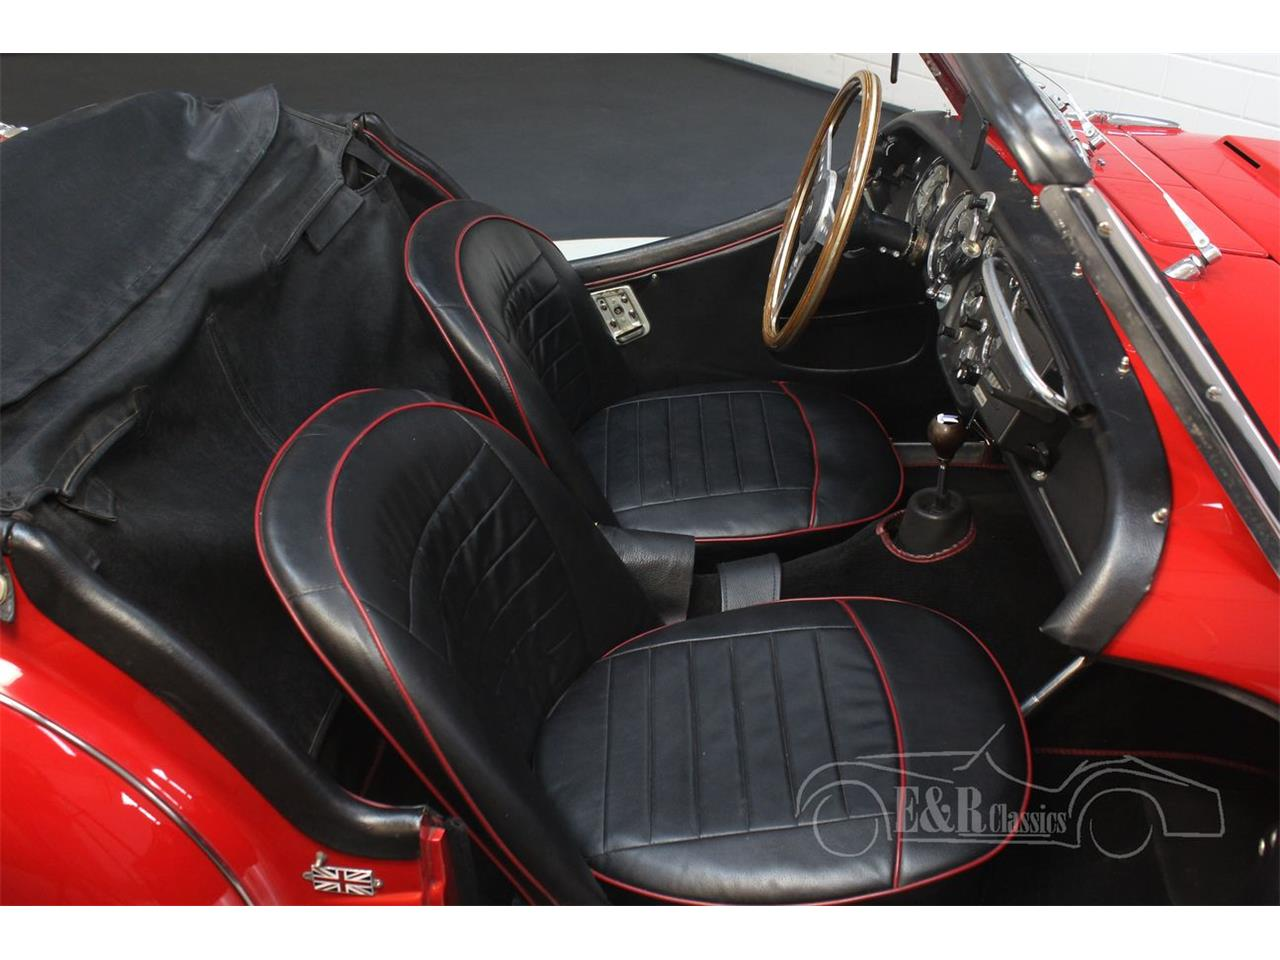 Large Picture of Classic '60 TR3A - $41,400.00 Offered by E & R Classics - Q31H